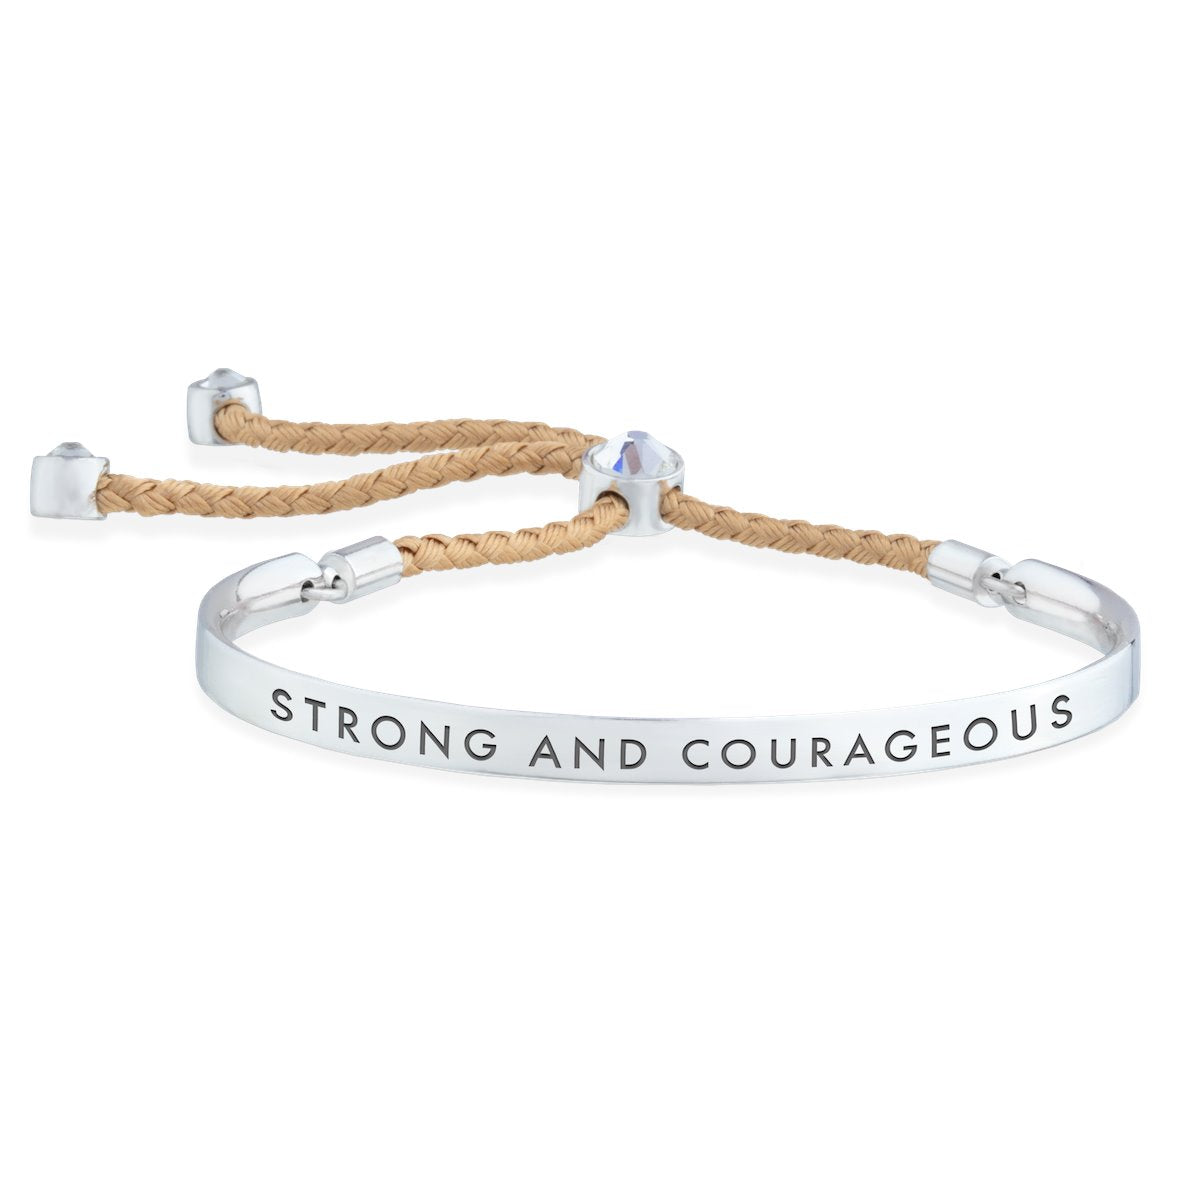 Strong and Courageous – Words of Empowerment Bracelet